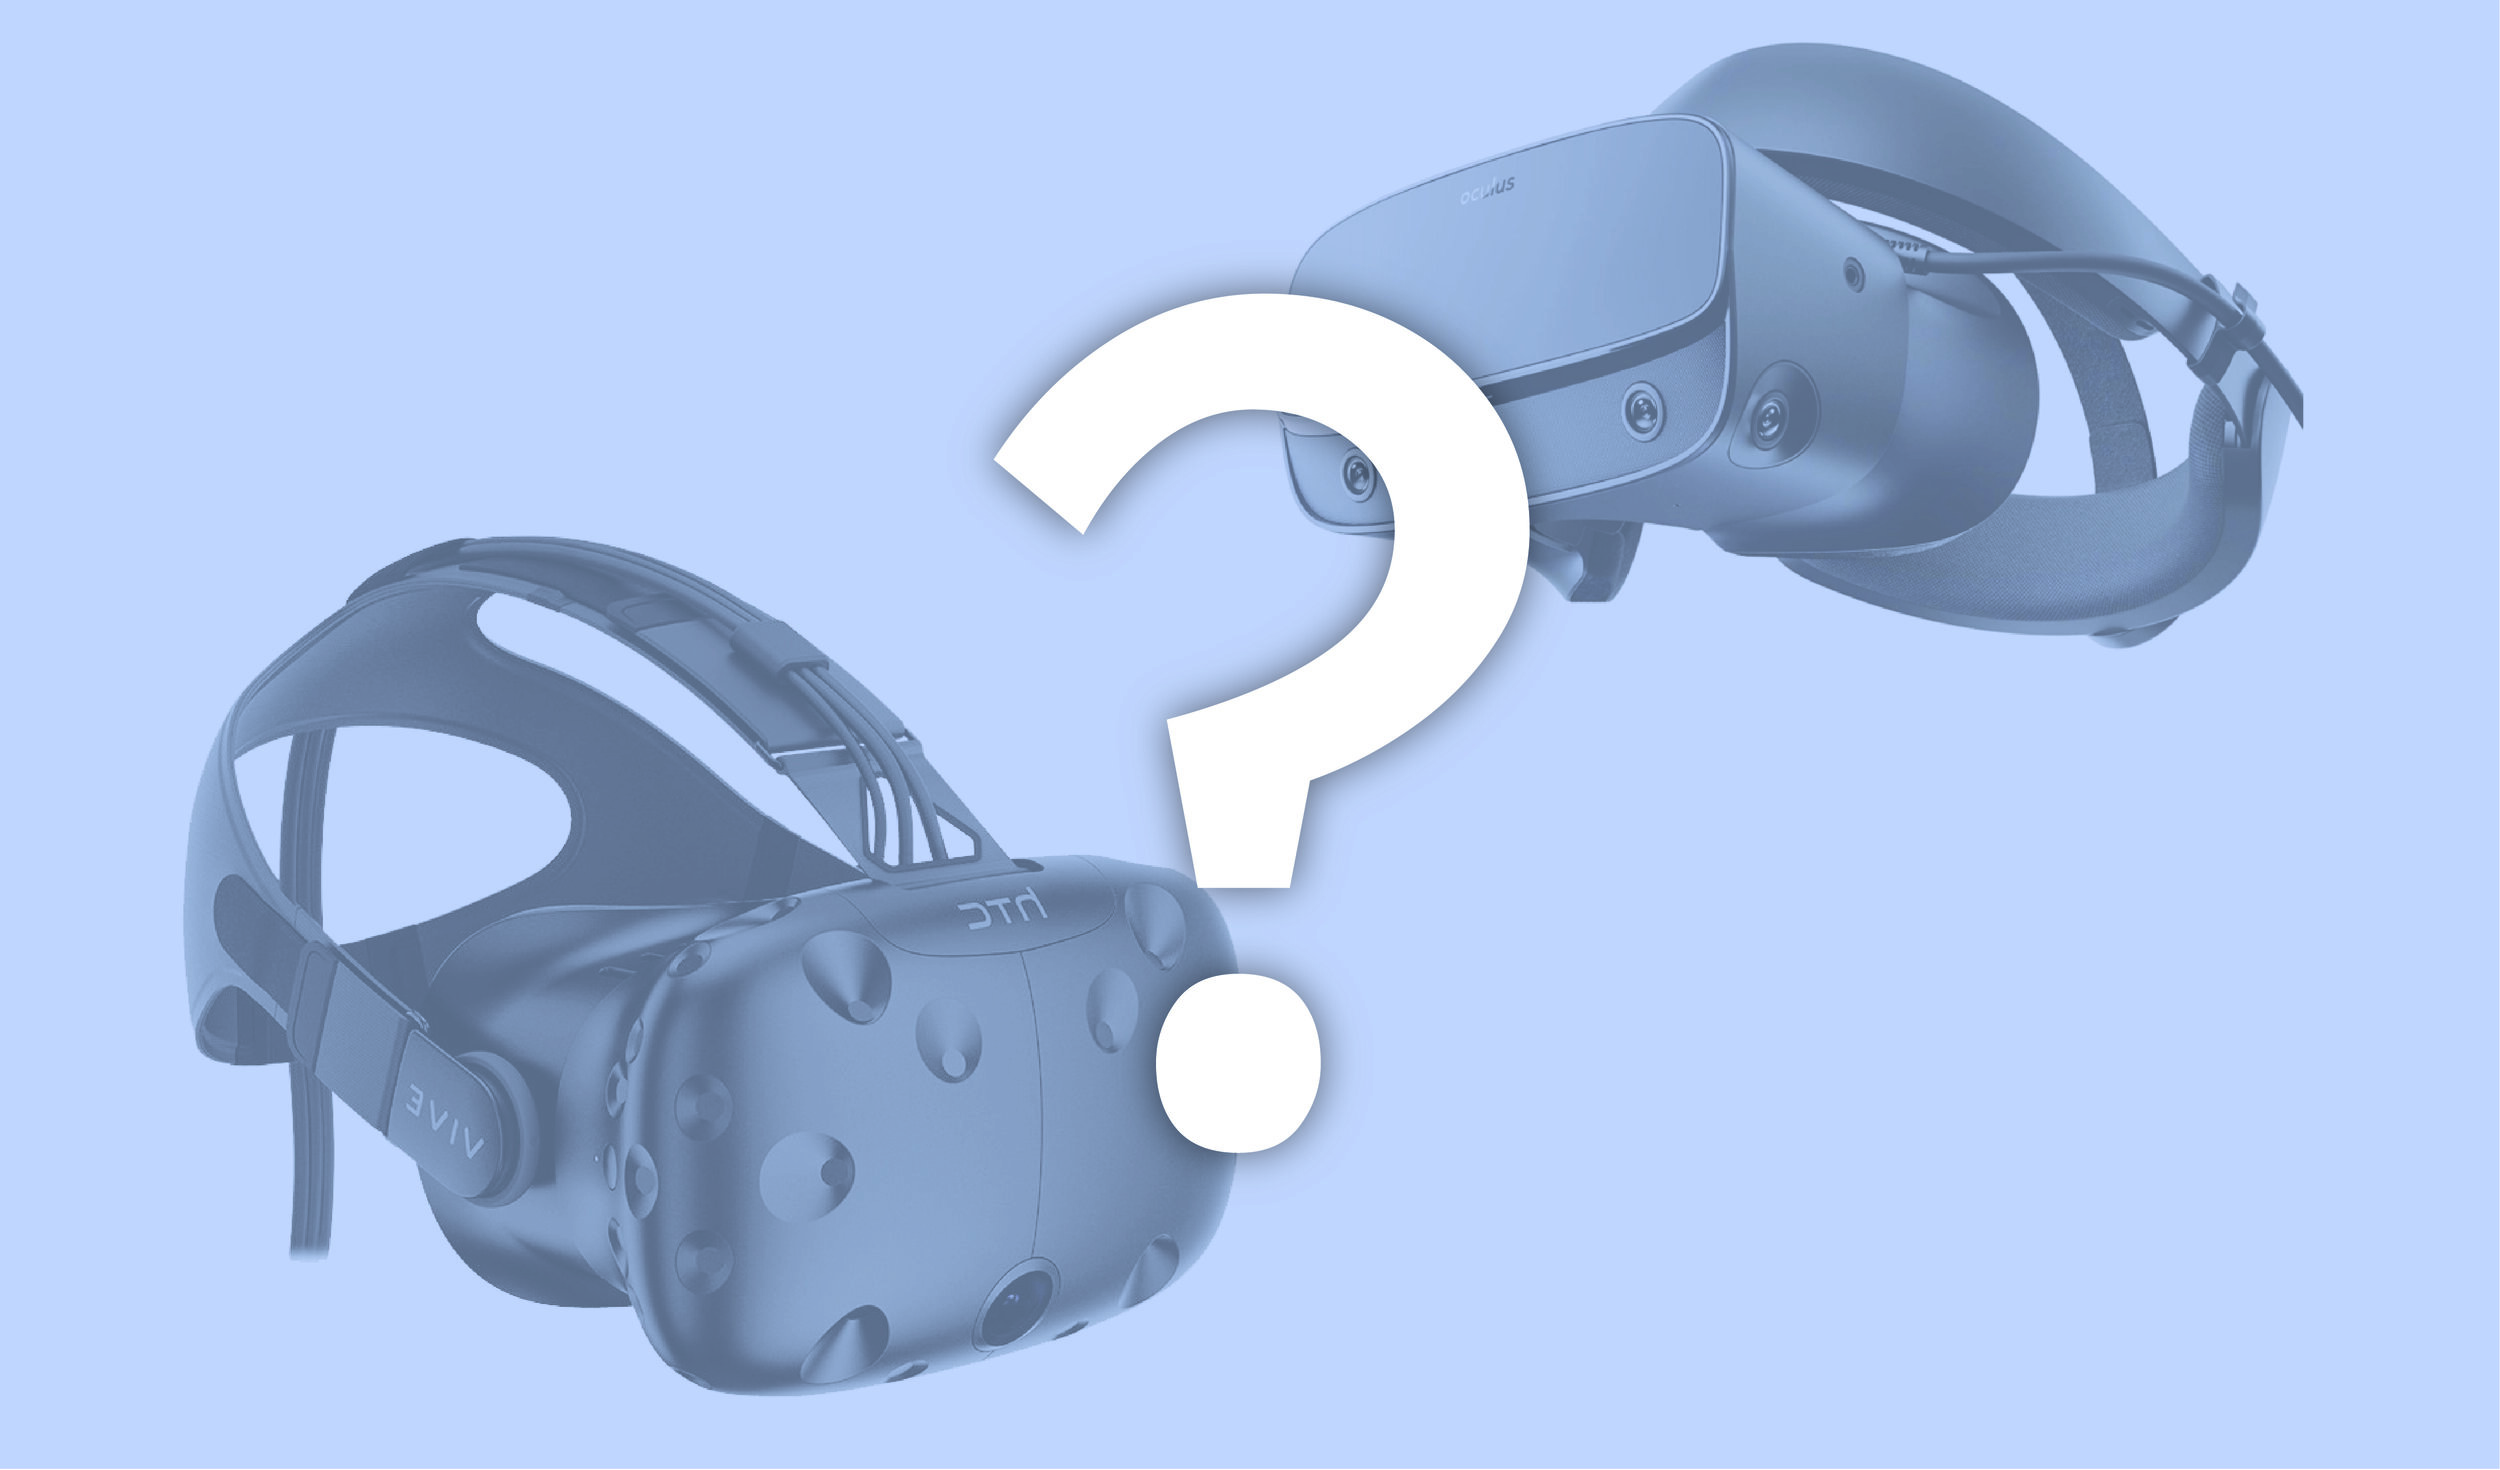 What Hardware do I Need? - We will make sure you get exactly what computers, mobile devices, HMDs (head-mounted displays), cables, and any other hardware you'll need to be successful with your VR project.